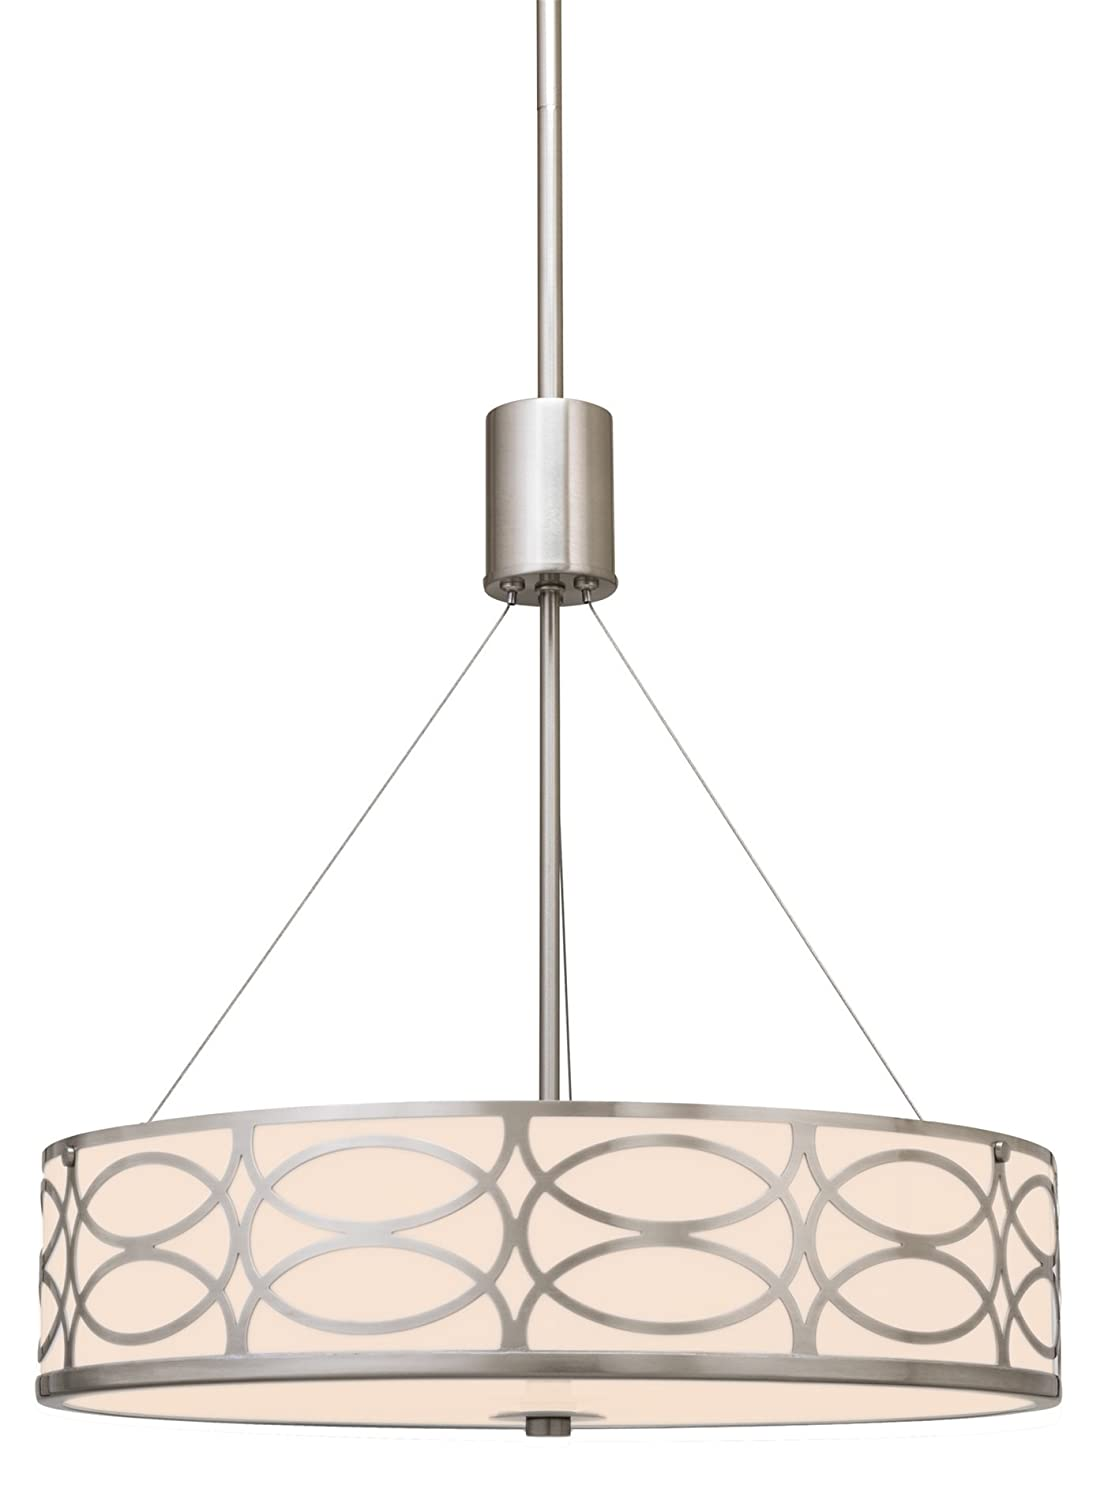 "Kira Home Sienna 18"" 3-Light Metal Drum Chandelier + Glass Diffuser, Brushed Nickel Finish"